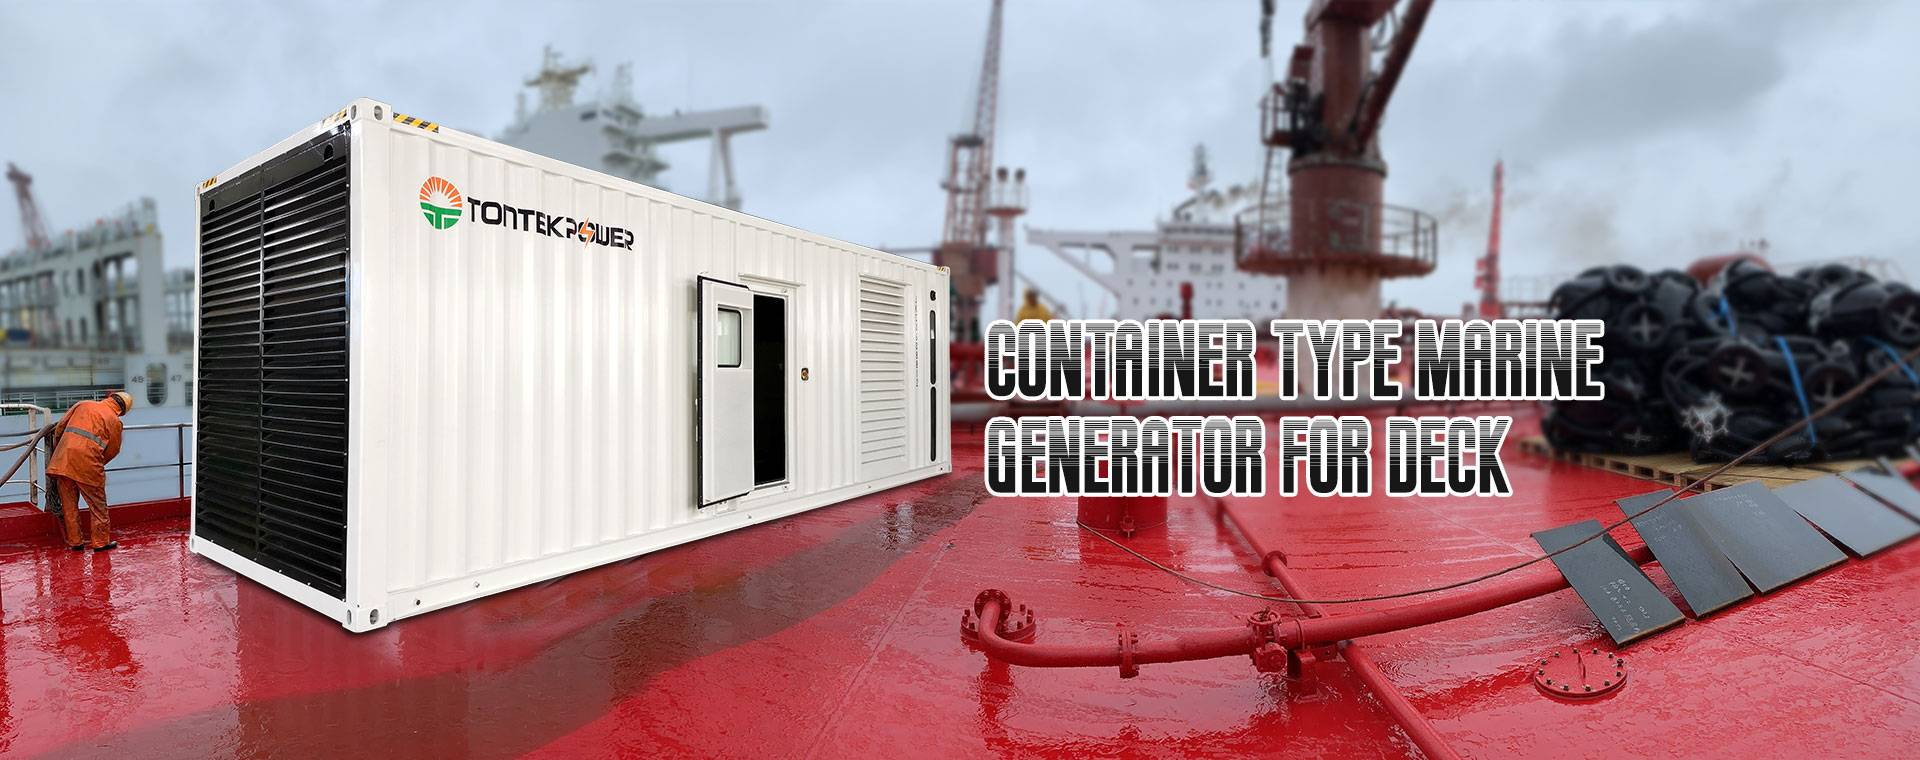 CONTAINER TYPE MARINE  GENERATOR FOR DECK